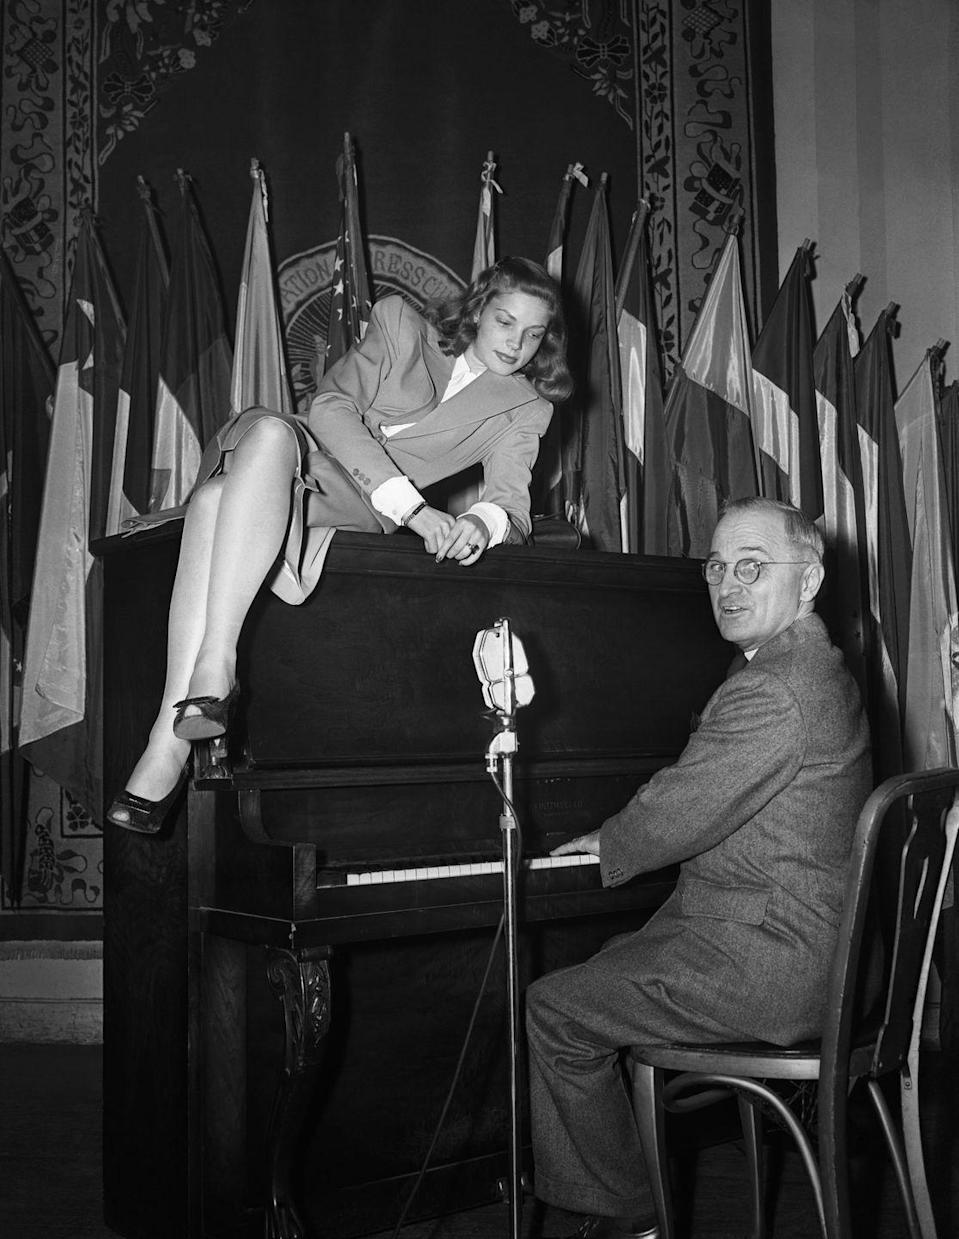 <p>Here, President Truman, who was a pianist, is seen during his time as vice president, tickling the ivories while actress Lauren Bacall poses on top of the piano. </p>